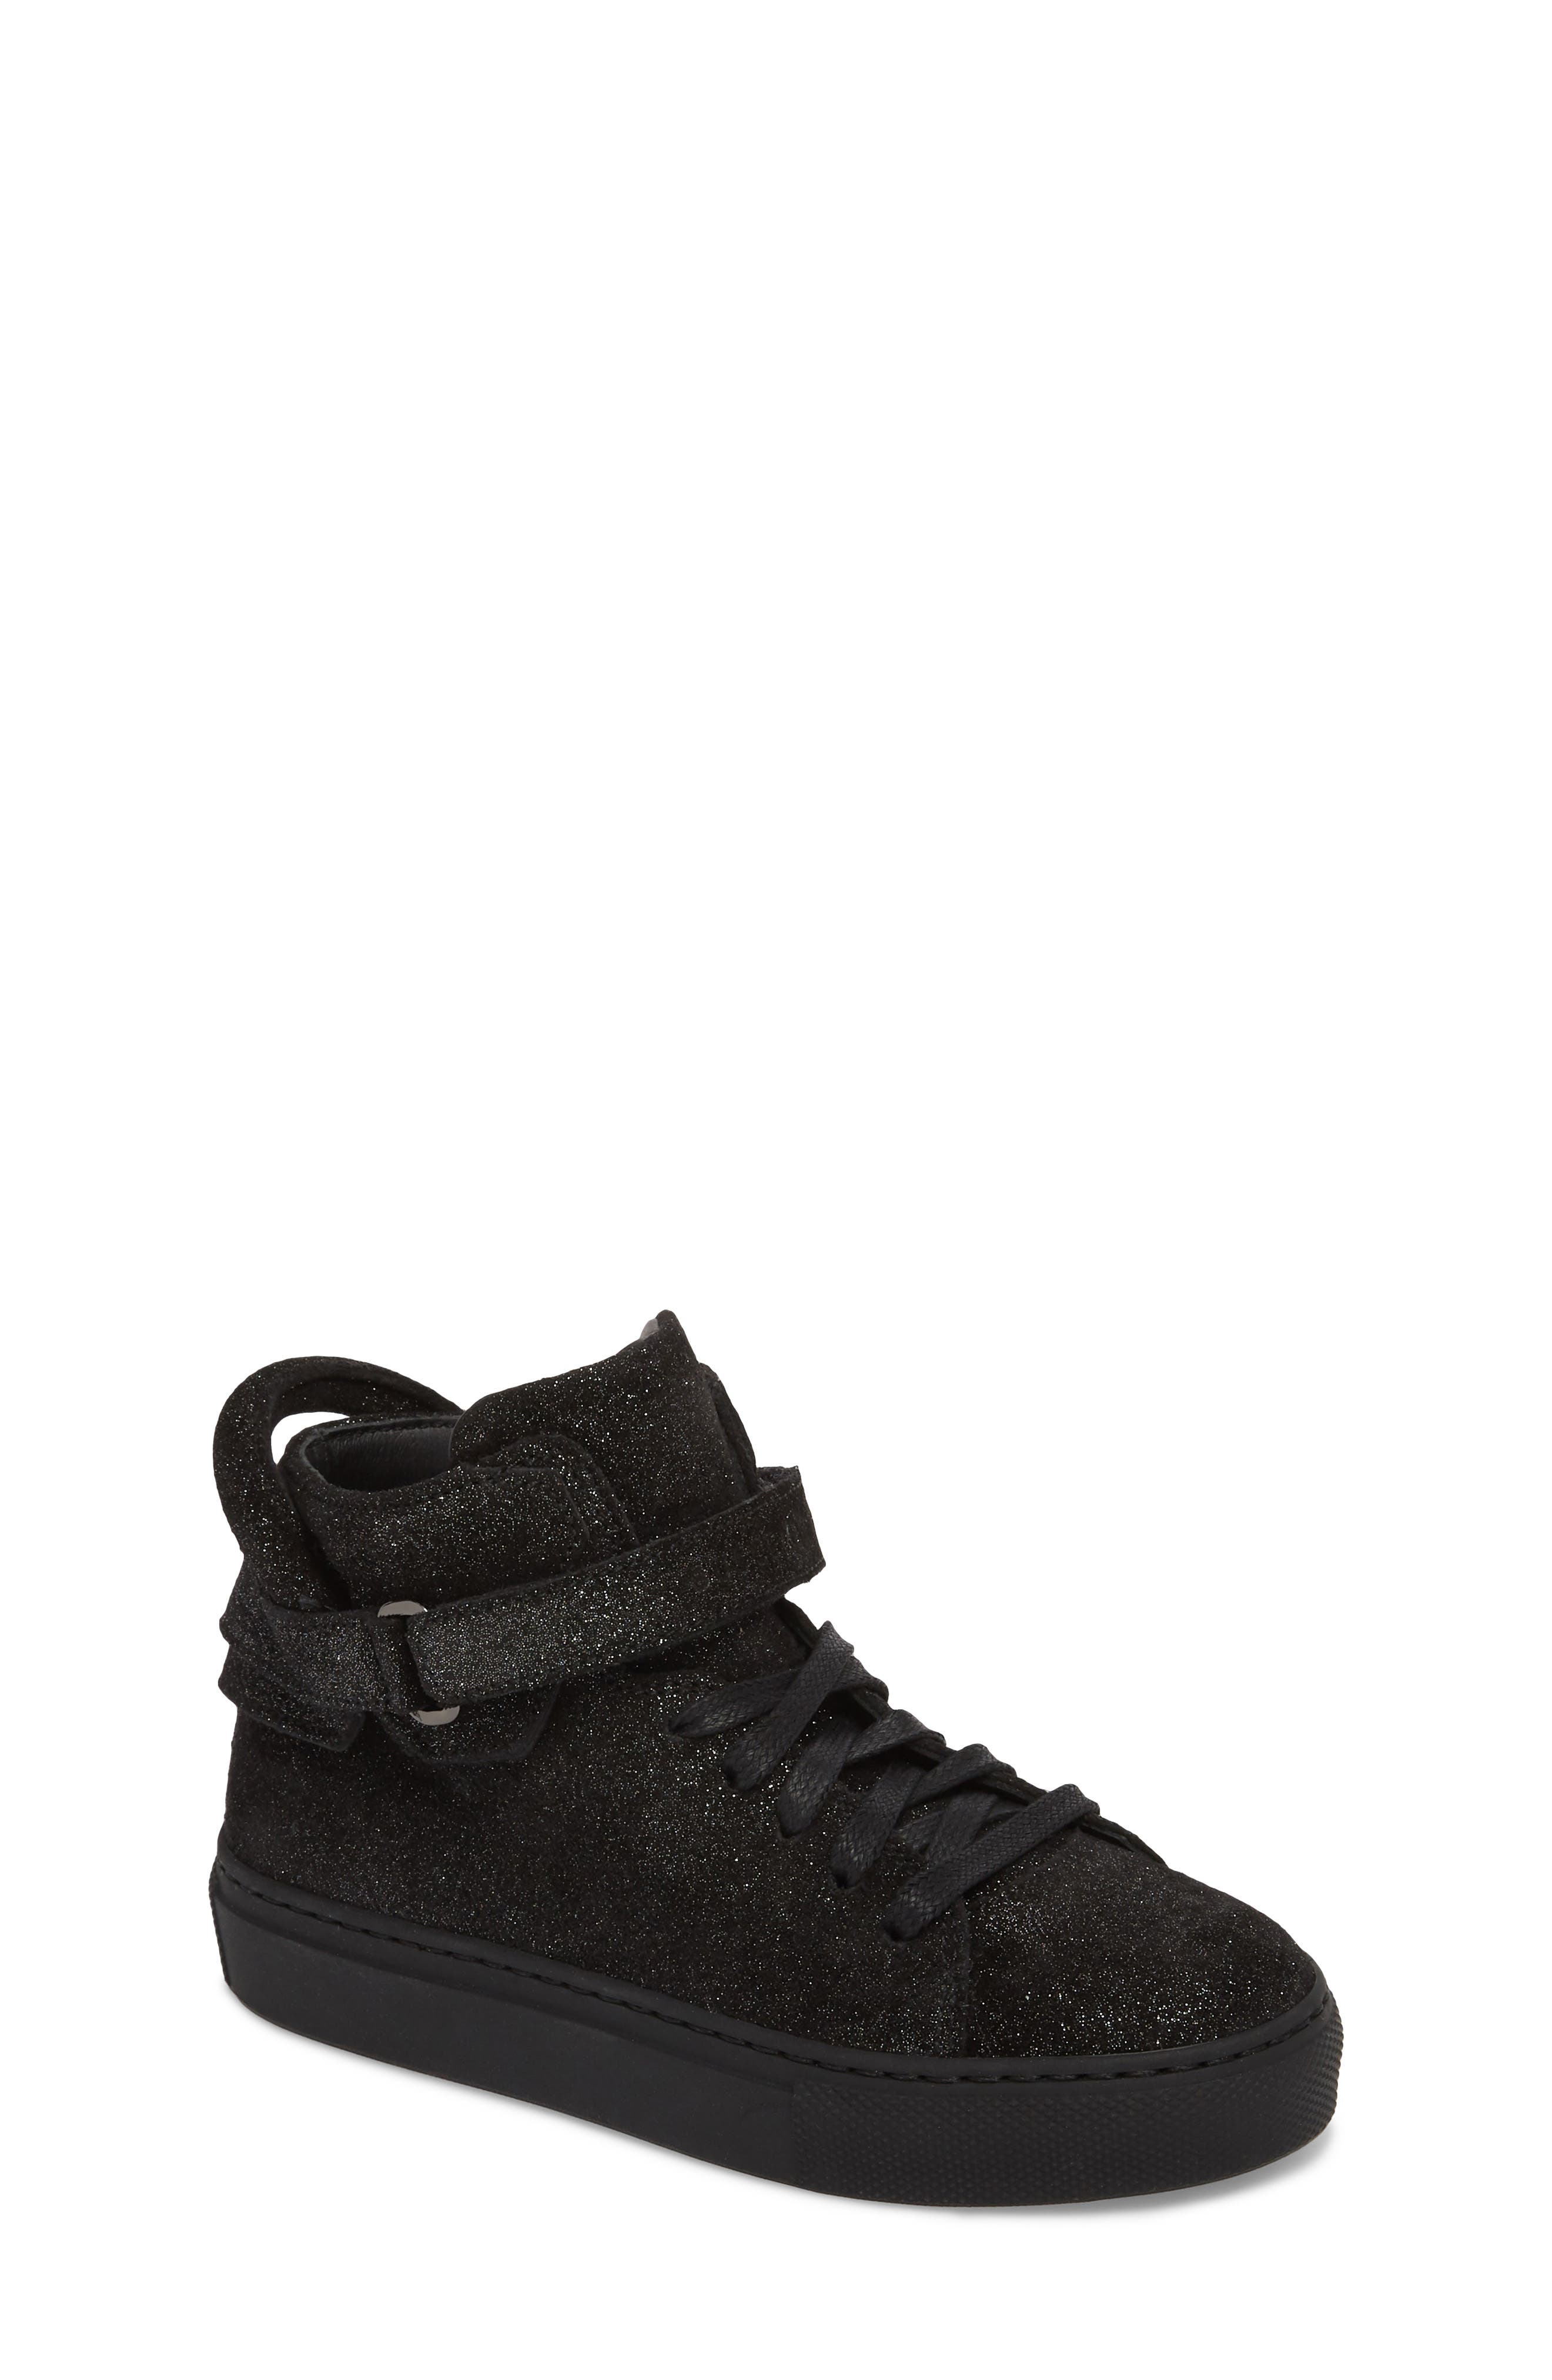 Gleam High Top Sneaker,                             Main thumbnail 1, color,                             001